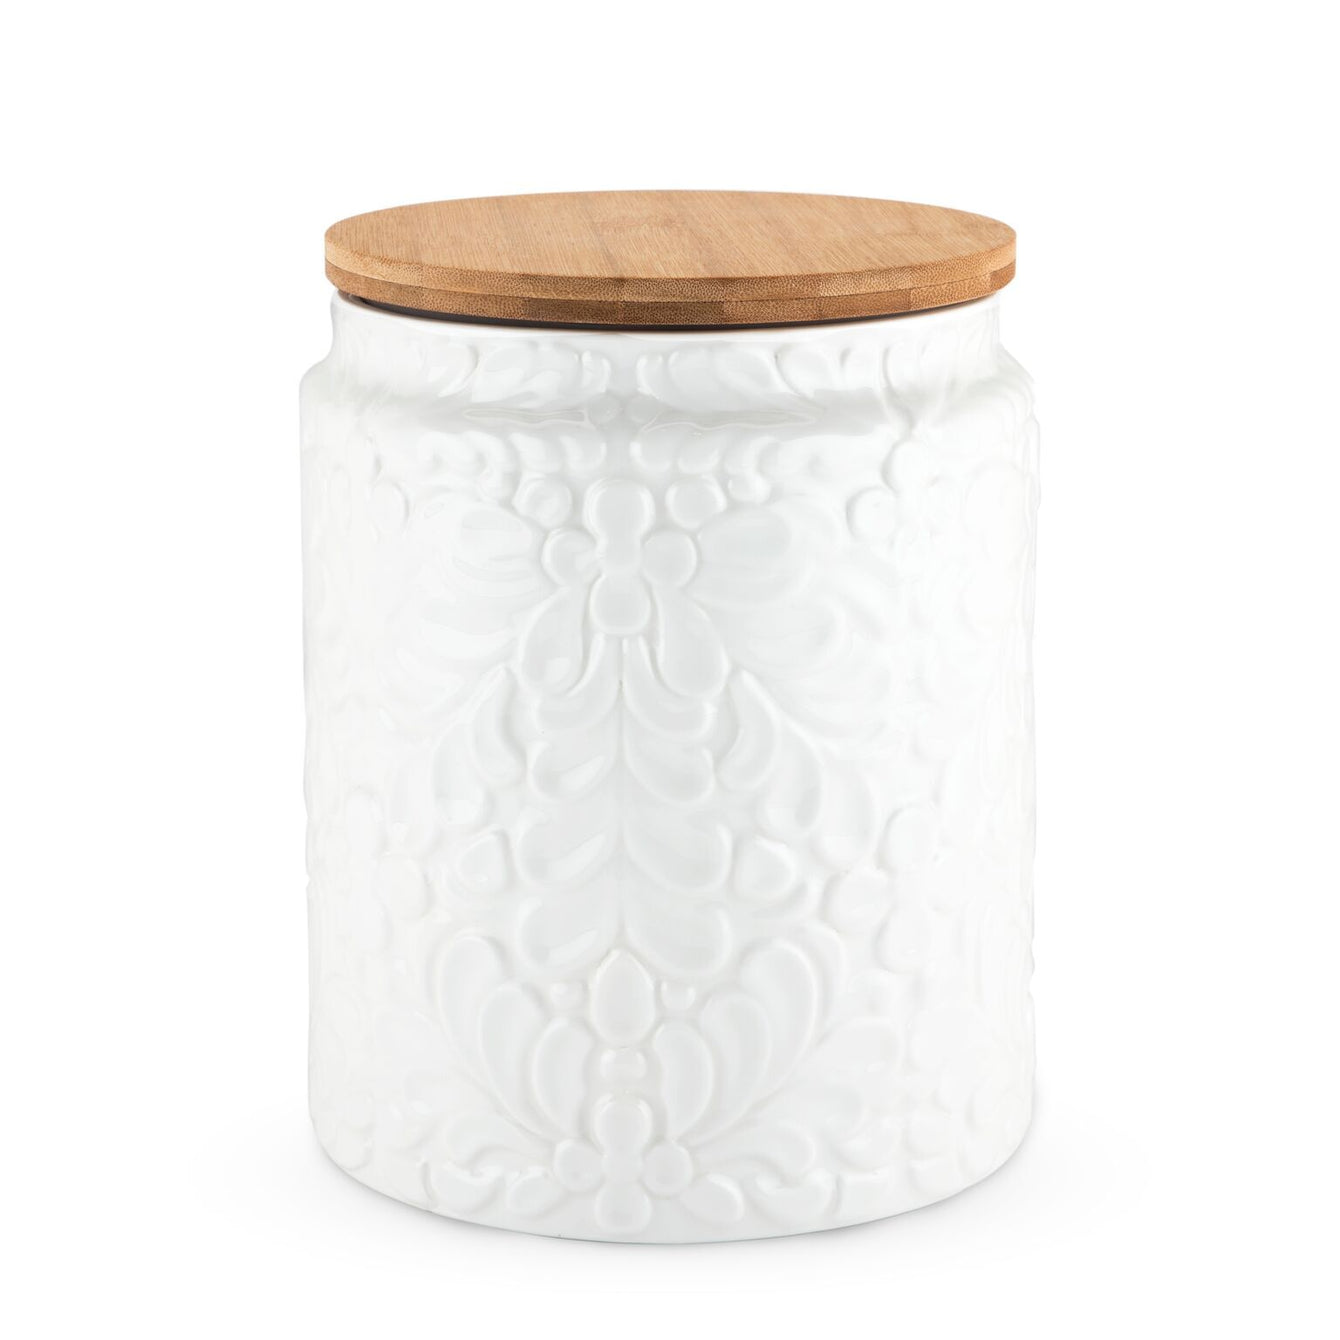 Pantry Textured Ceramic Large Canister-Home - Kitchen + Bathroom - Canisters + Jars-TWINE-Peccadilly